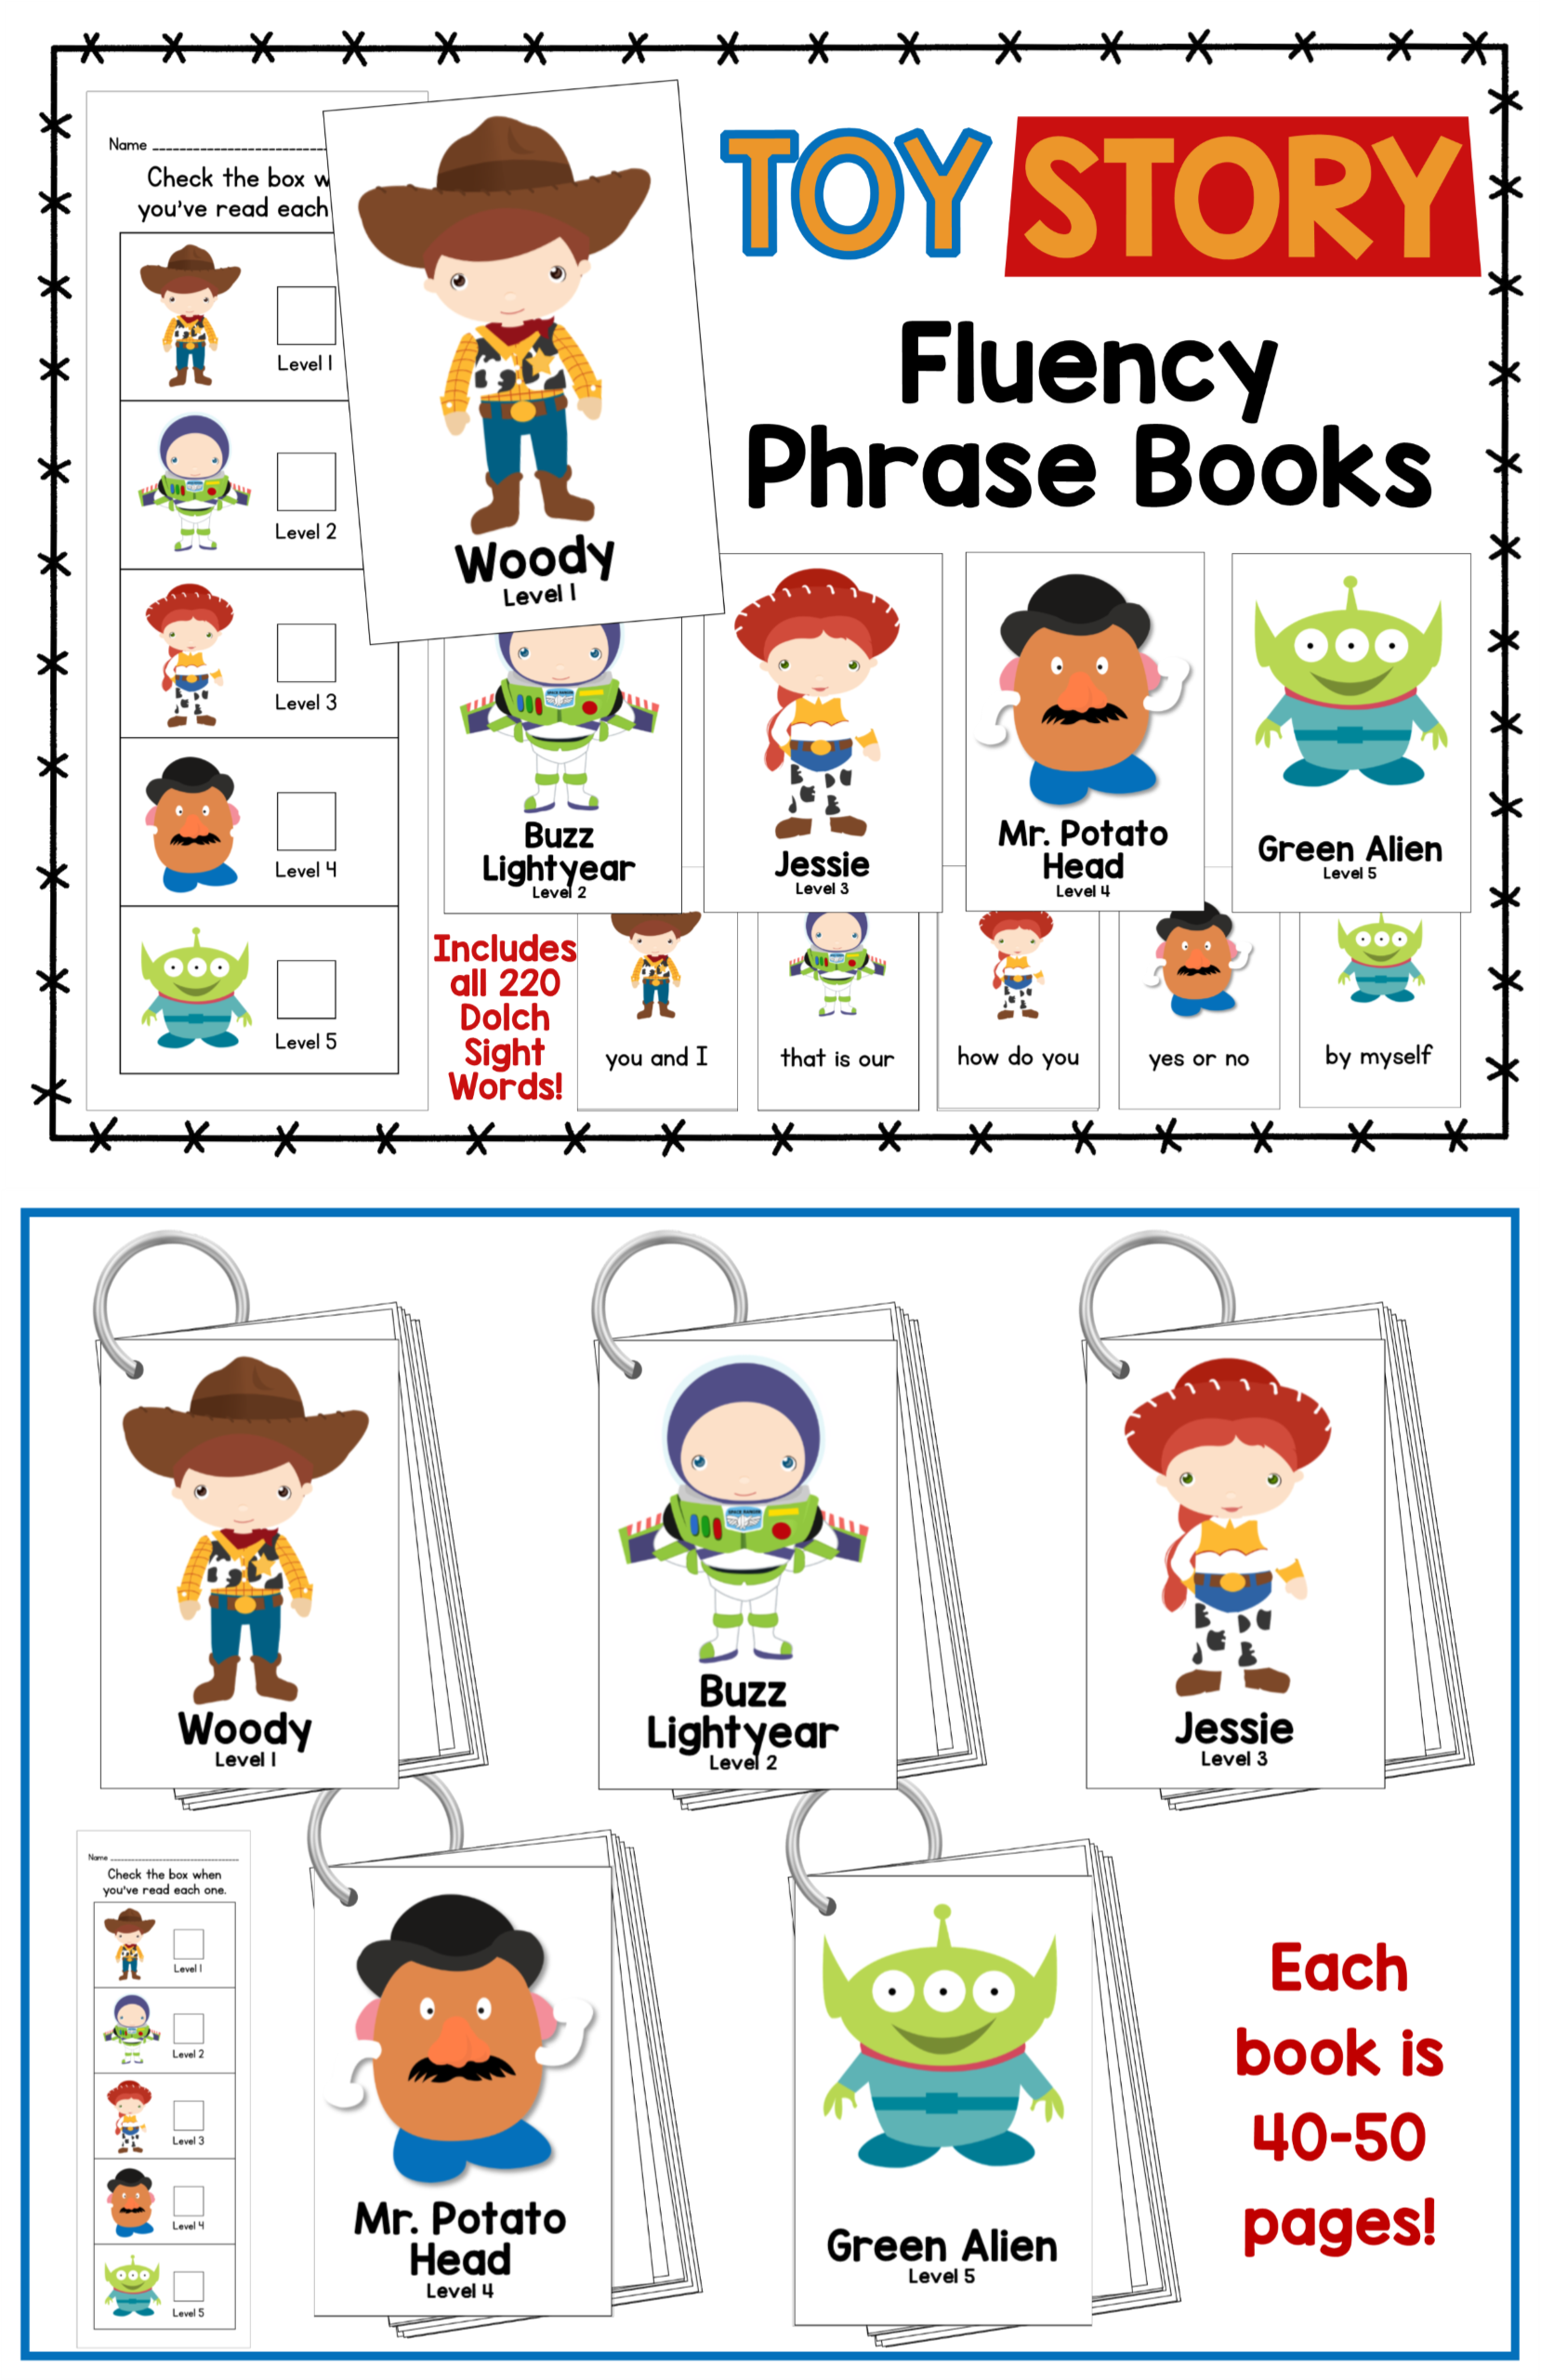 Toy Fluency Phrase Books